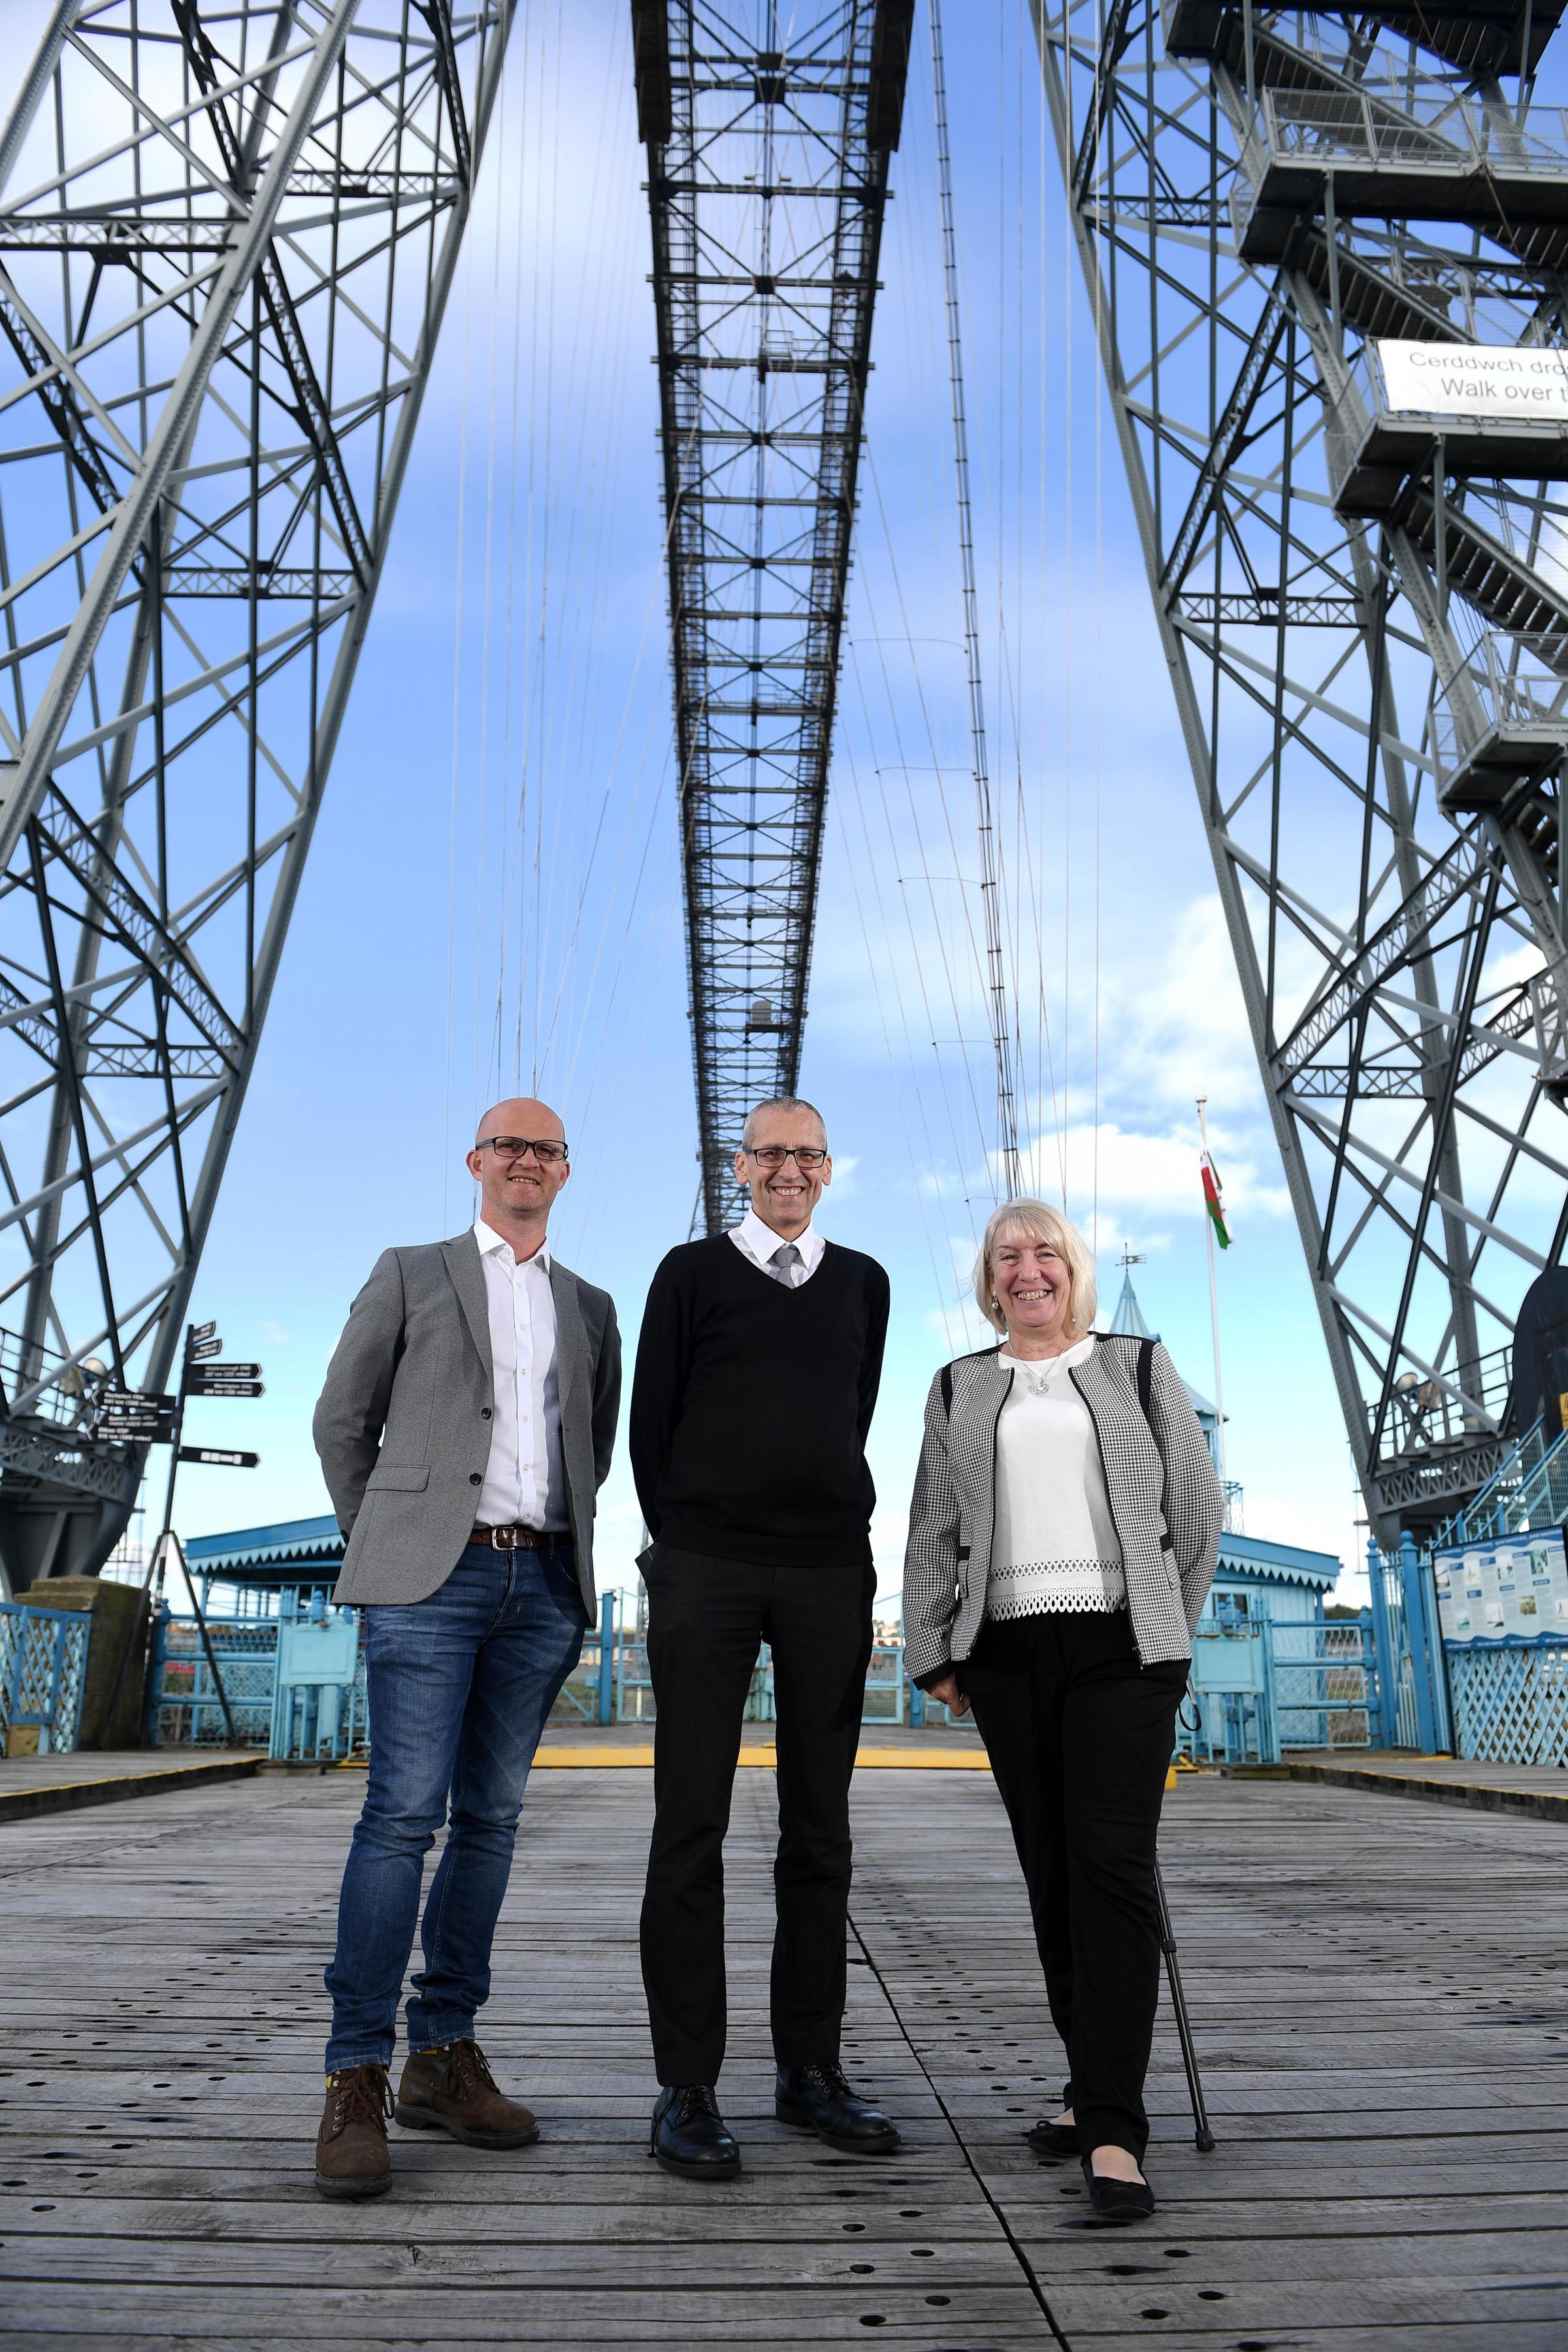 The Newport Transporter Bridge, is offering free tours to the pubic as part of the Welsh Government's Open Doors Programme. Pictured here from left to right are Jason Thomas, Cadw Spokesperson, Mike Lewis, Newport City Council Museums and Heritage Off